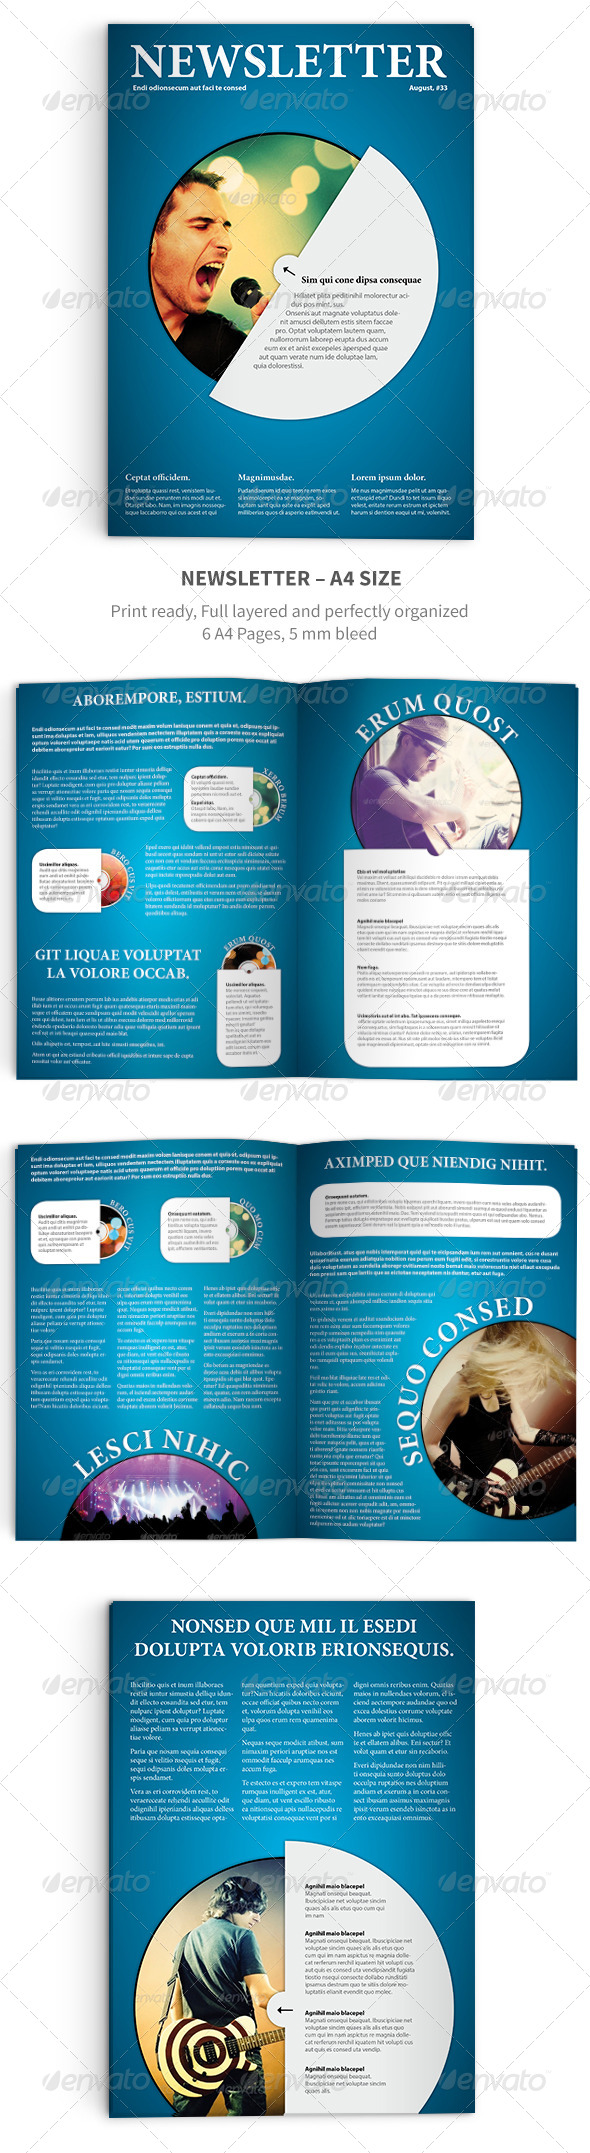 GraphicRiver Newsletter Vol 11 Indesign Template 5097339